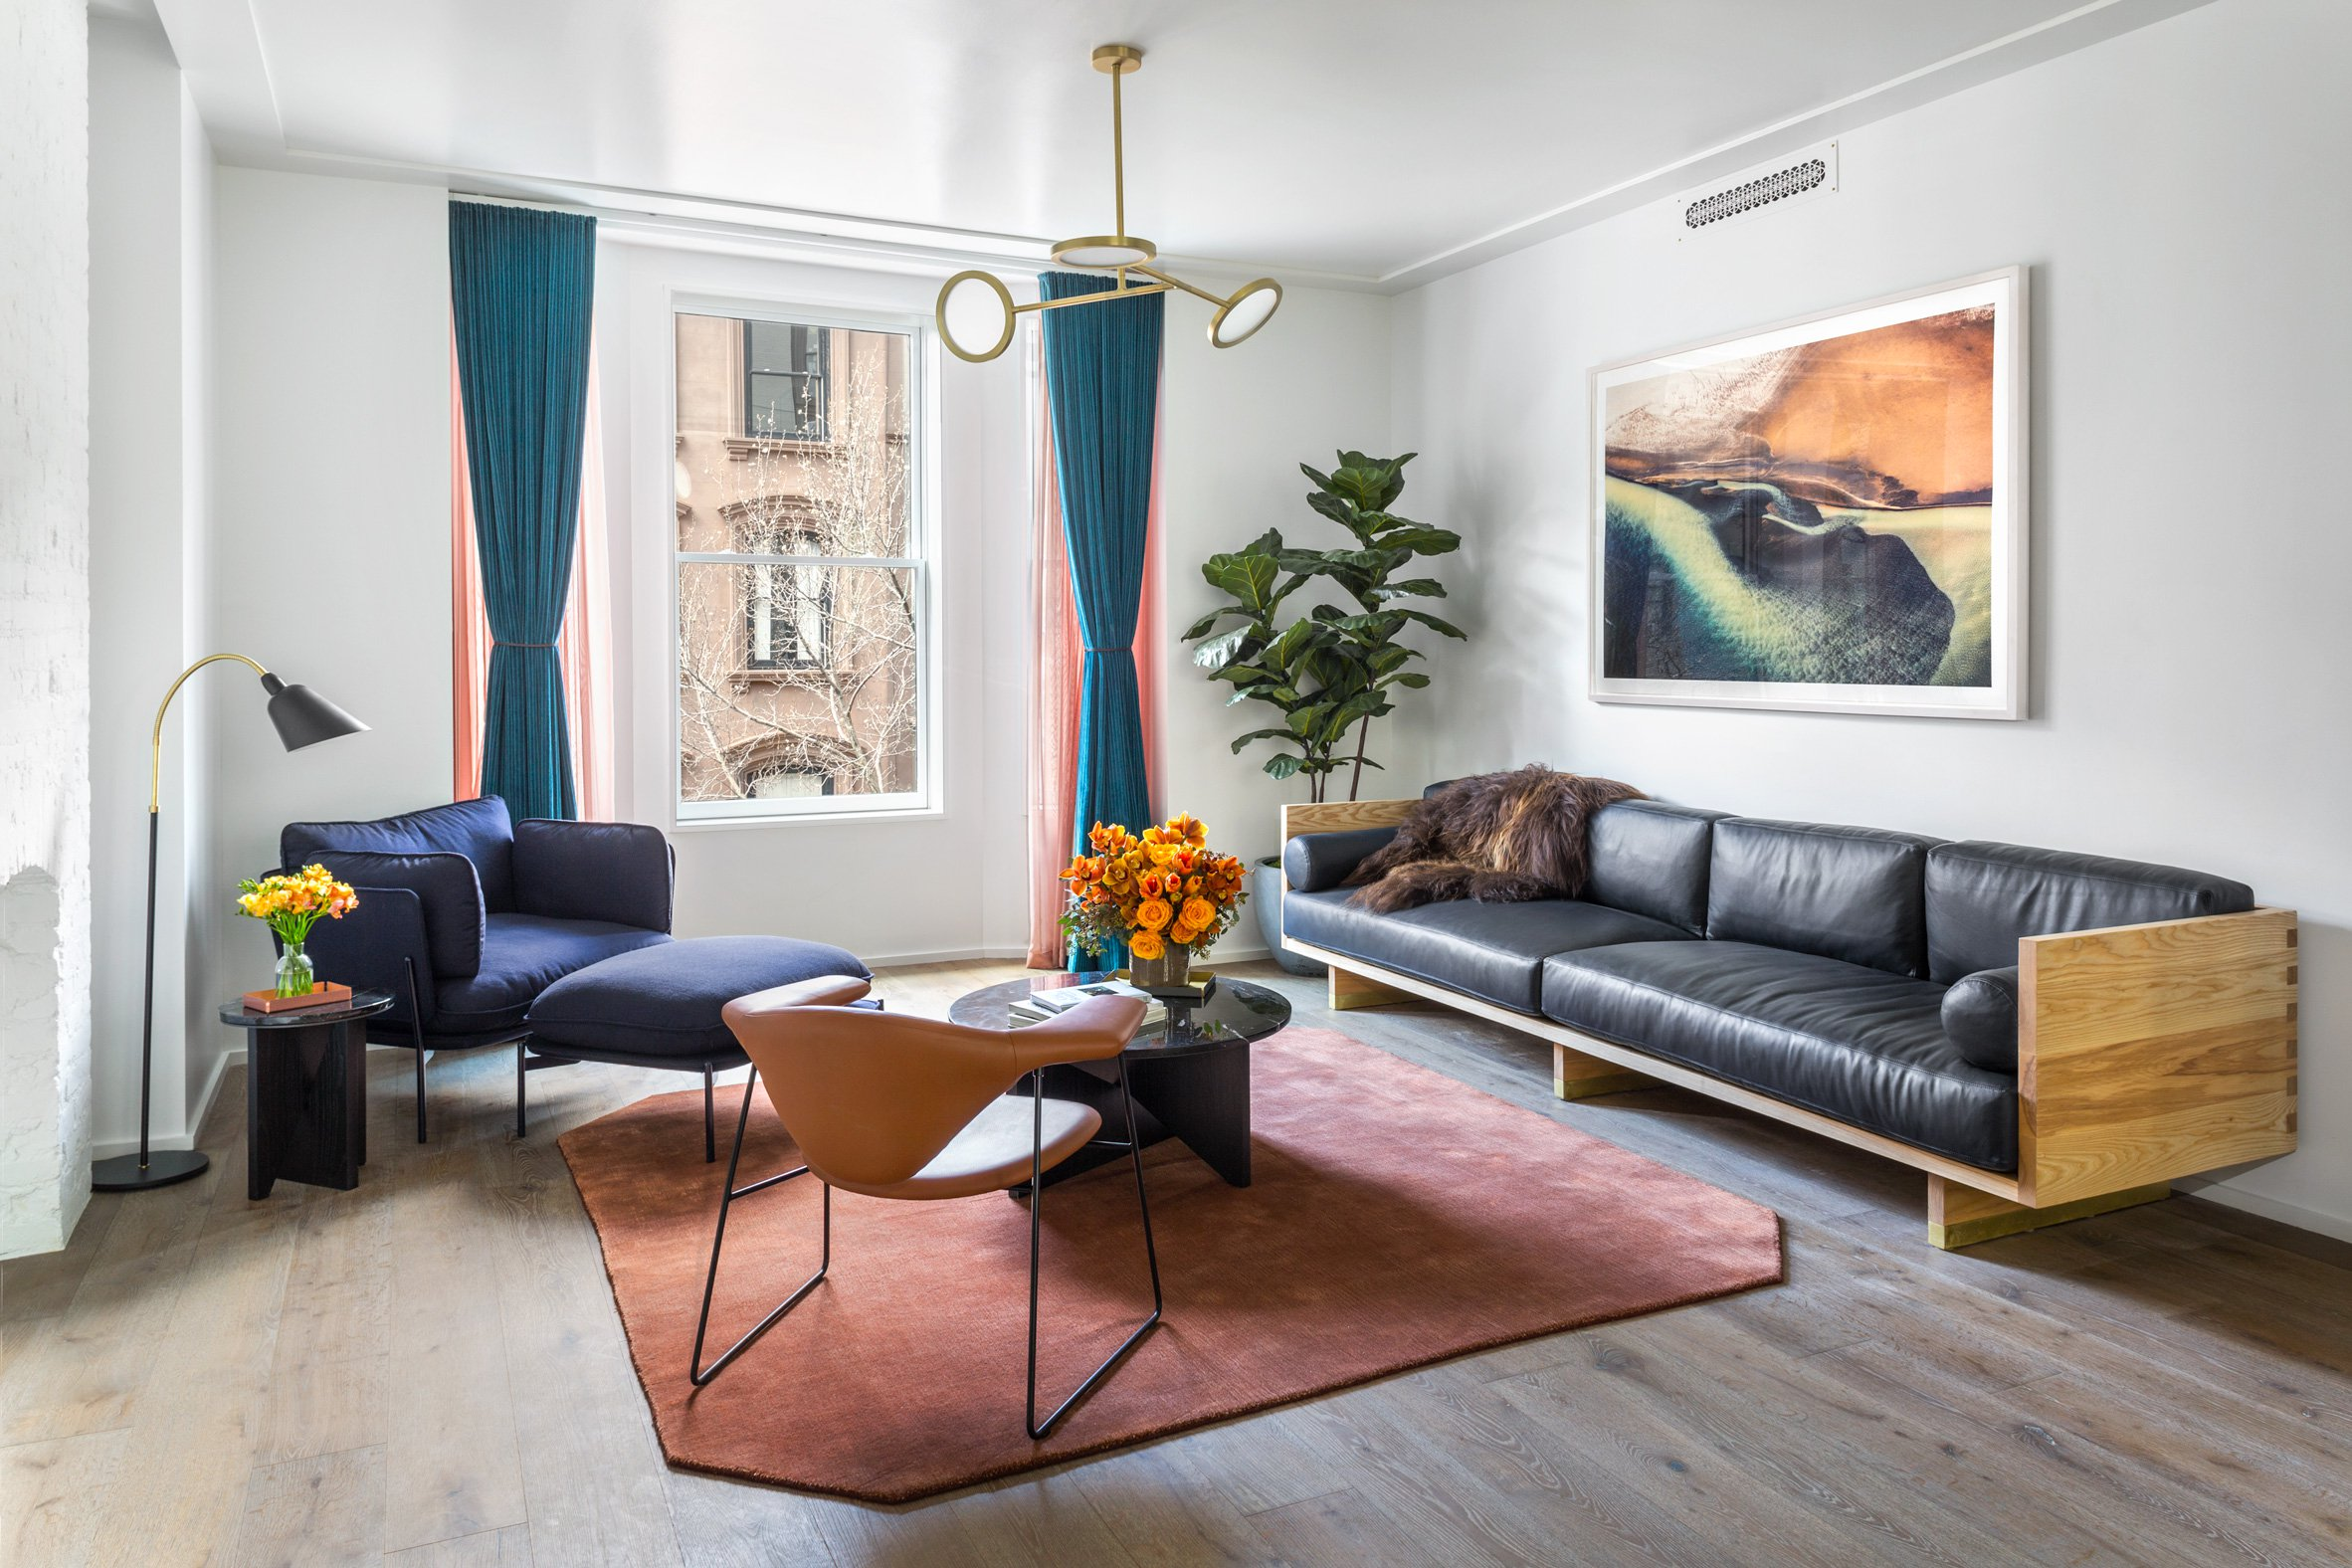 Beautiful brooklyn apartment gets chic interior design by local studio matter eulnnnw